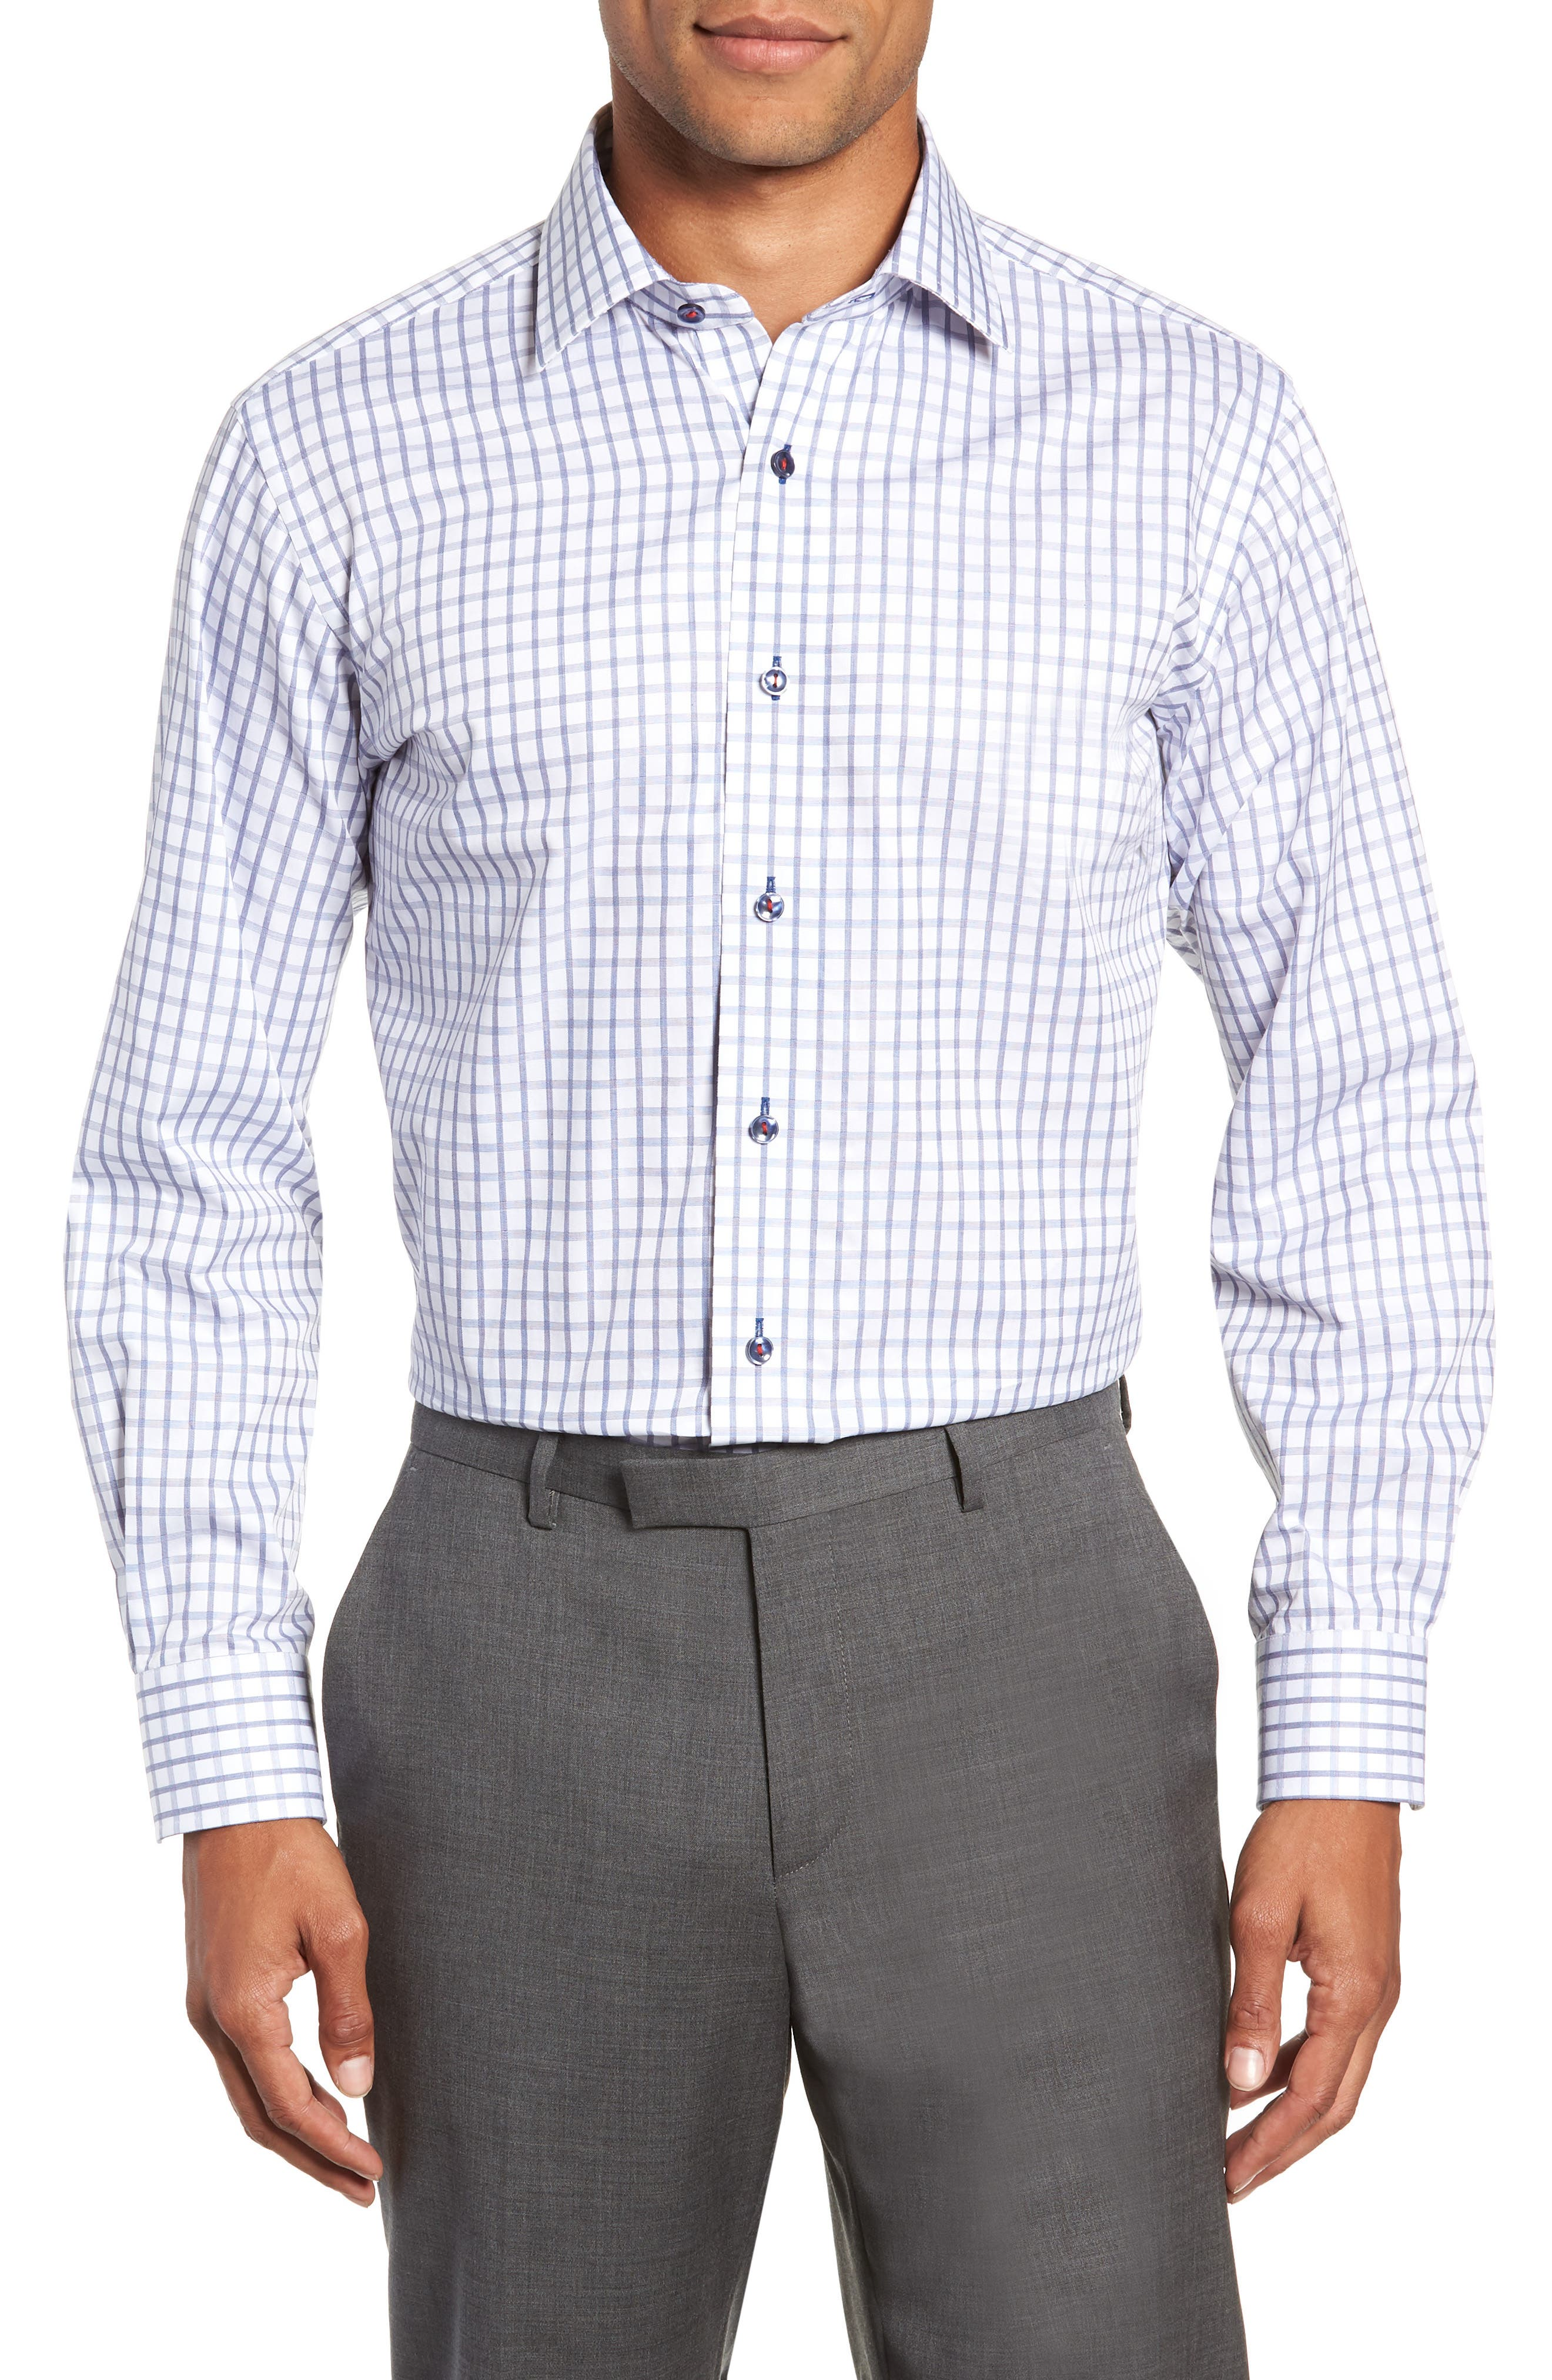 Trim Fit Check Dress Shirt,                             Main thumbnail 1, color,                             420